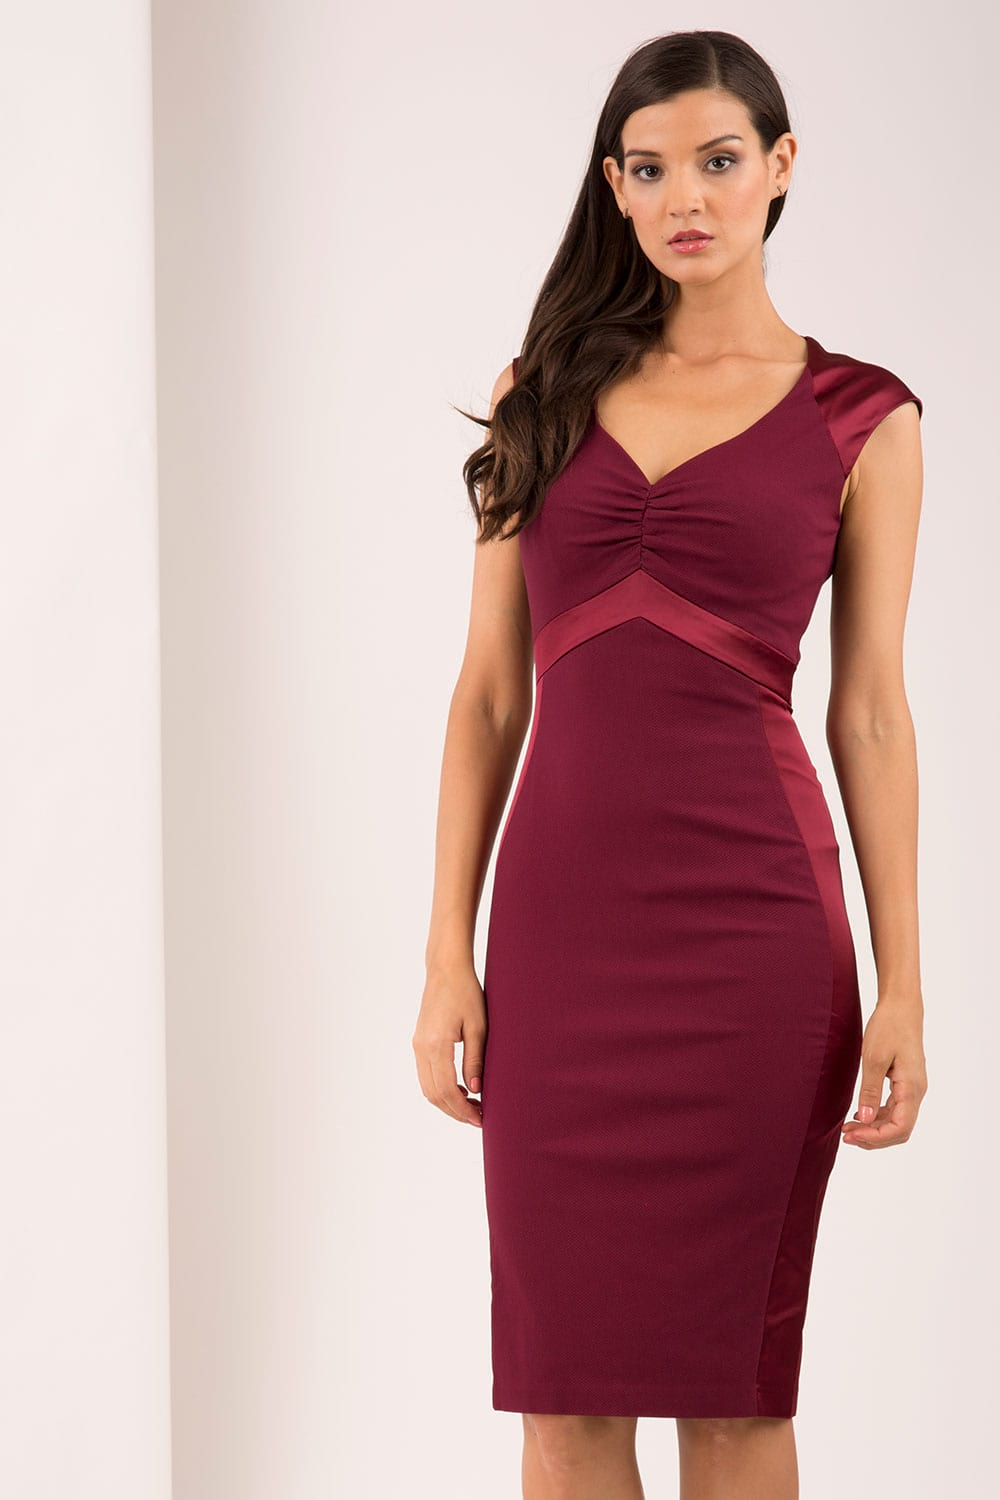 Hybrid Fashion Sally 1187 Sweetheart Neckline Pencil Dress